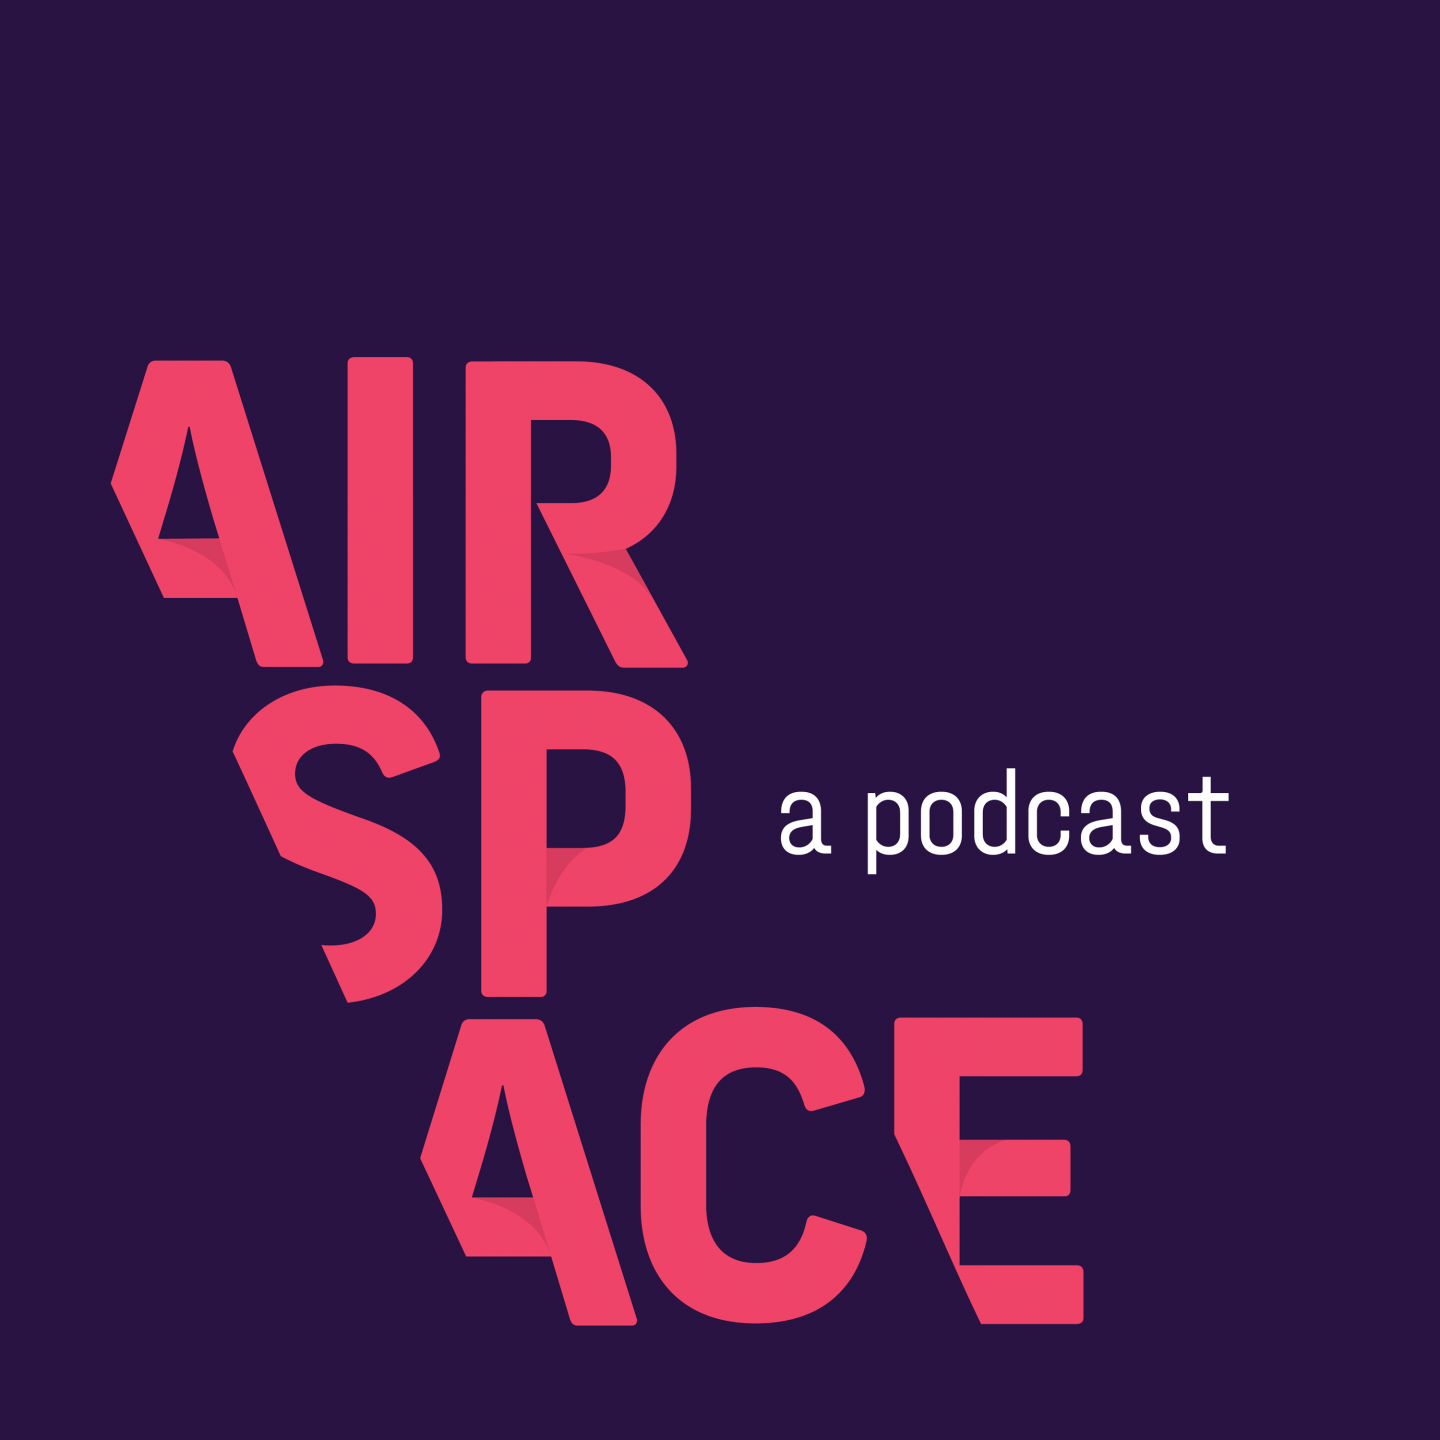 Purple and pink logo of AirSpace